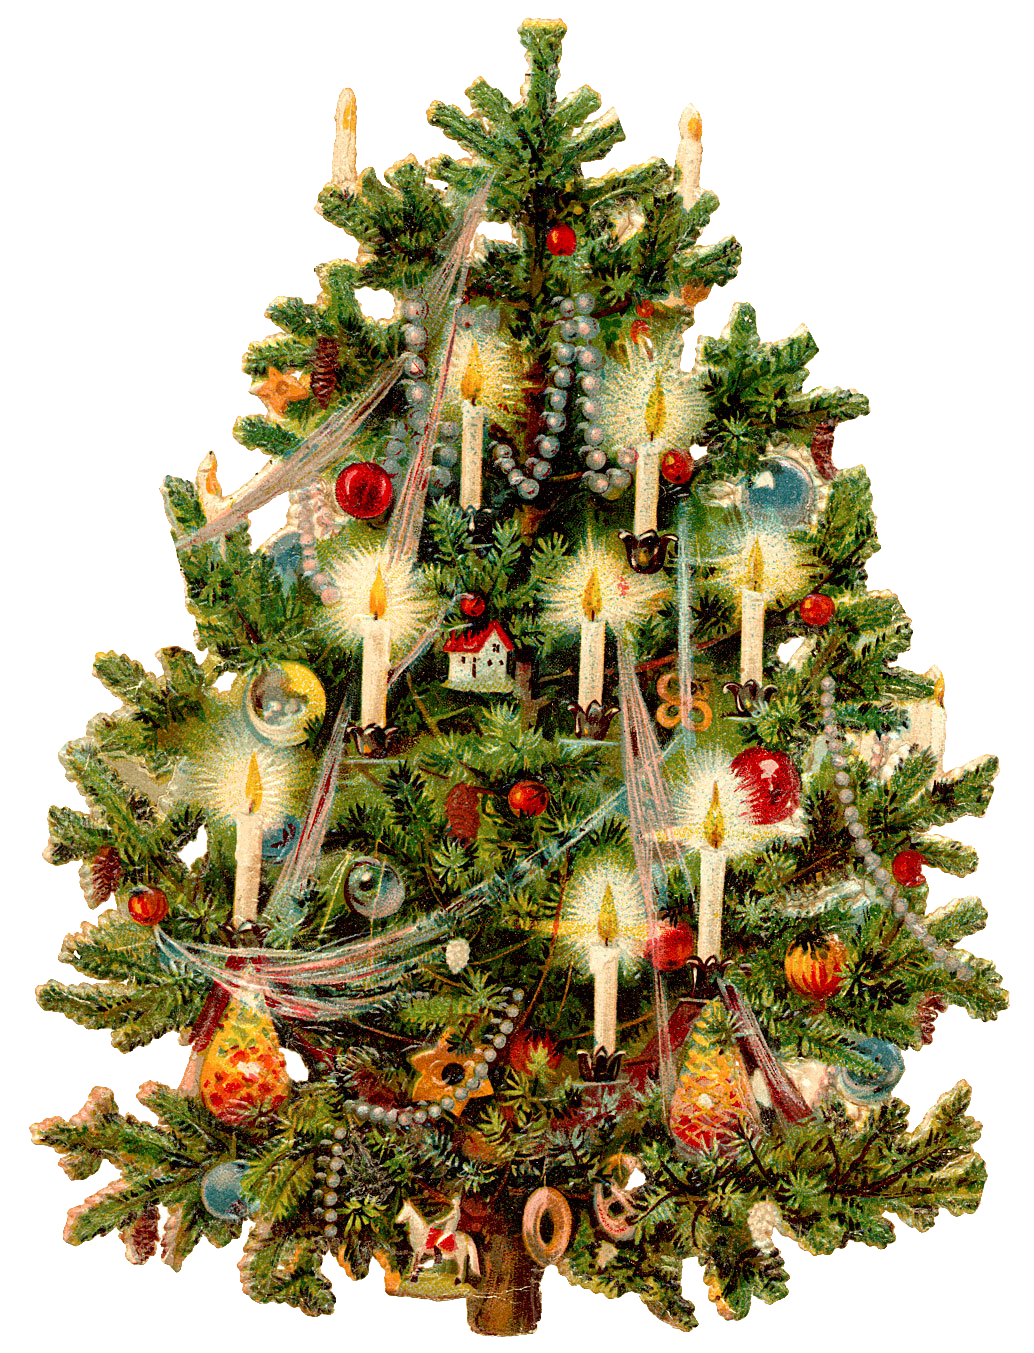 Wings Of Whimsy Victorian Christmas Tree PNG Transparent Background Vintage